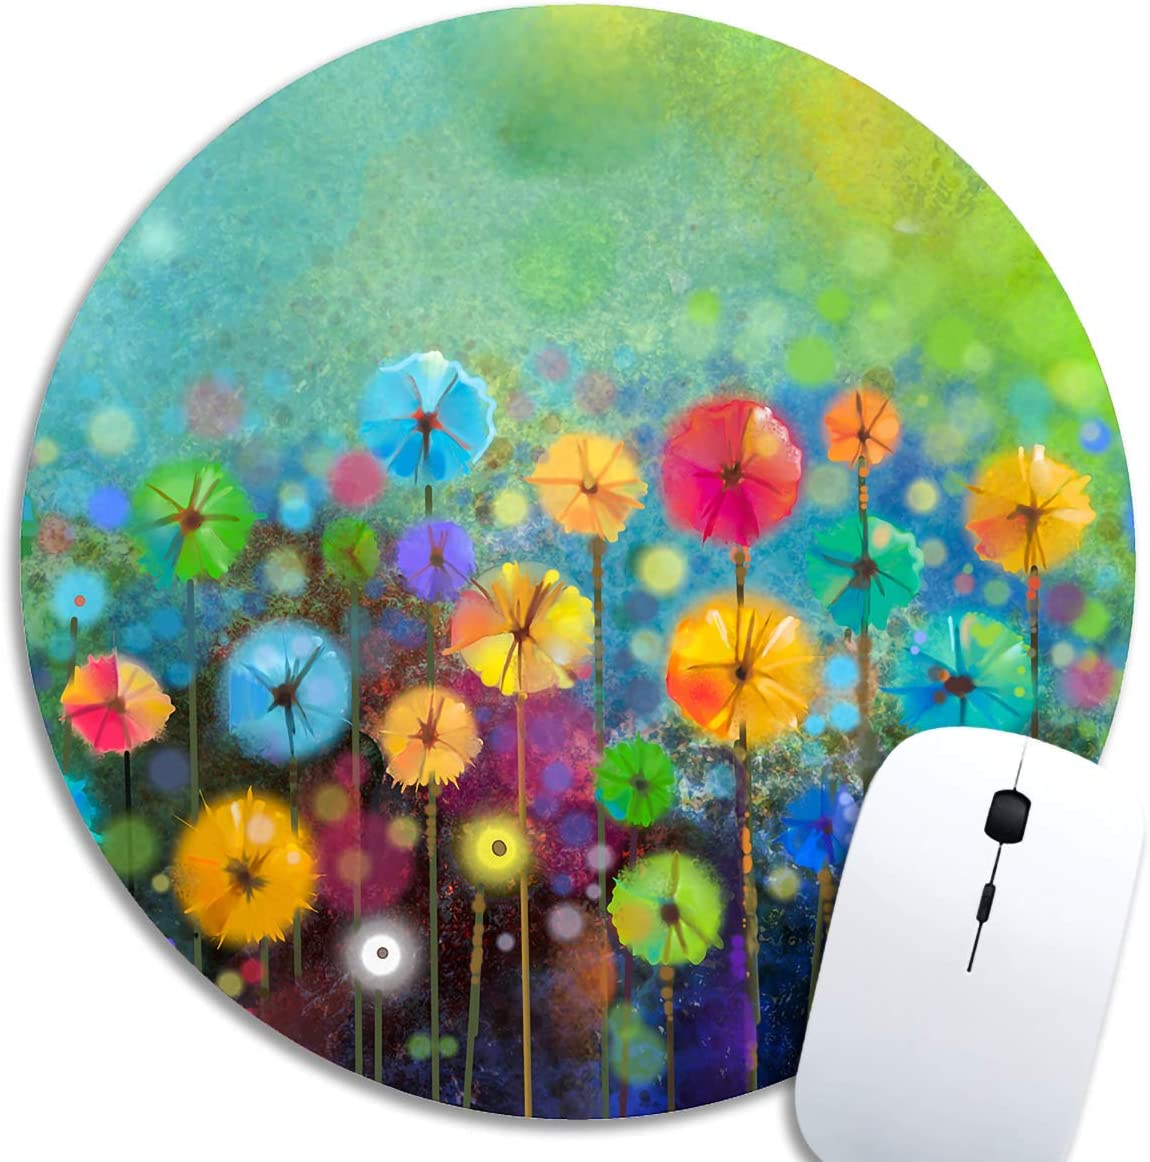 SHruizhuo Cute Gaming Mouse Pad Watercolor Nature Landscape Floral, Desk Mousepad,Small Mouse Pads for Computers Laptop,Round Mouse Mat Colorful Flowers Spring Personalized